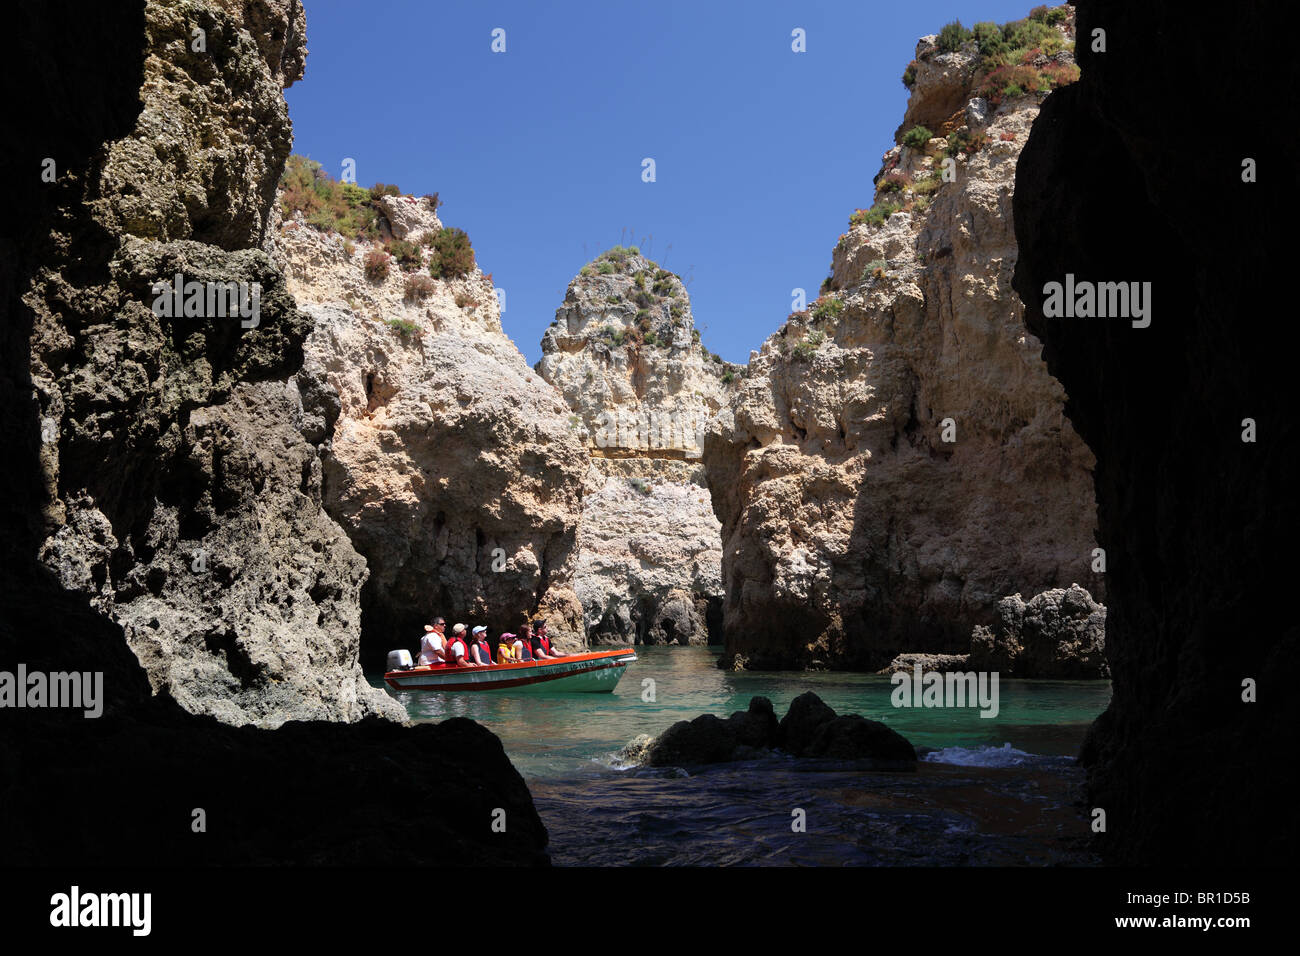 Tourists discovering the cliffs near Lagos, Algarve Portugal - Stock Image